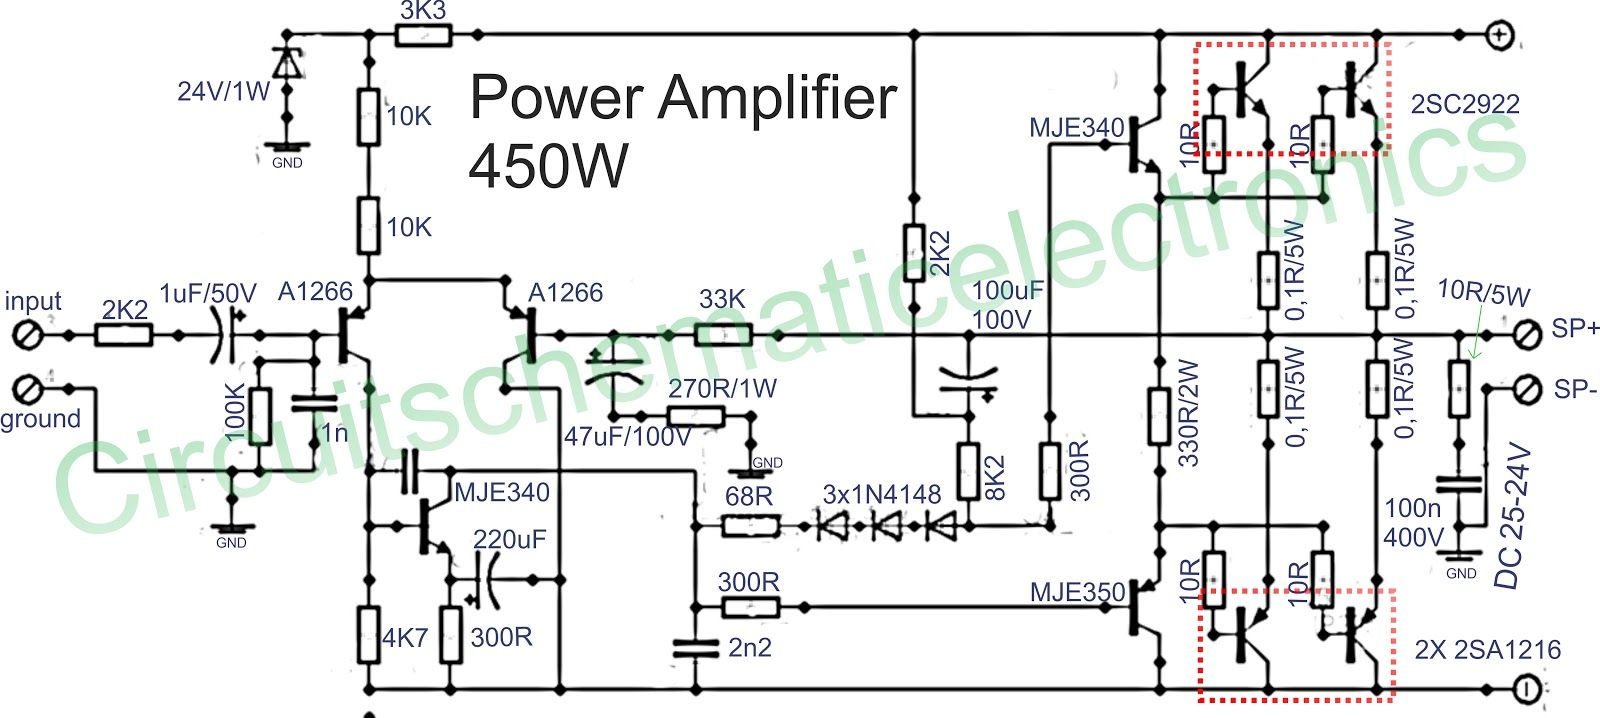 medium resolution of circuit of power amplifiers with power output of 450 watts mono with transistor booster sanken amplifiers are also frequently used in the amplifier a